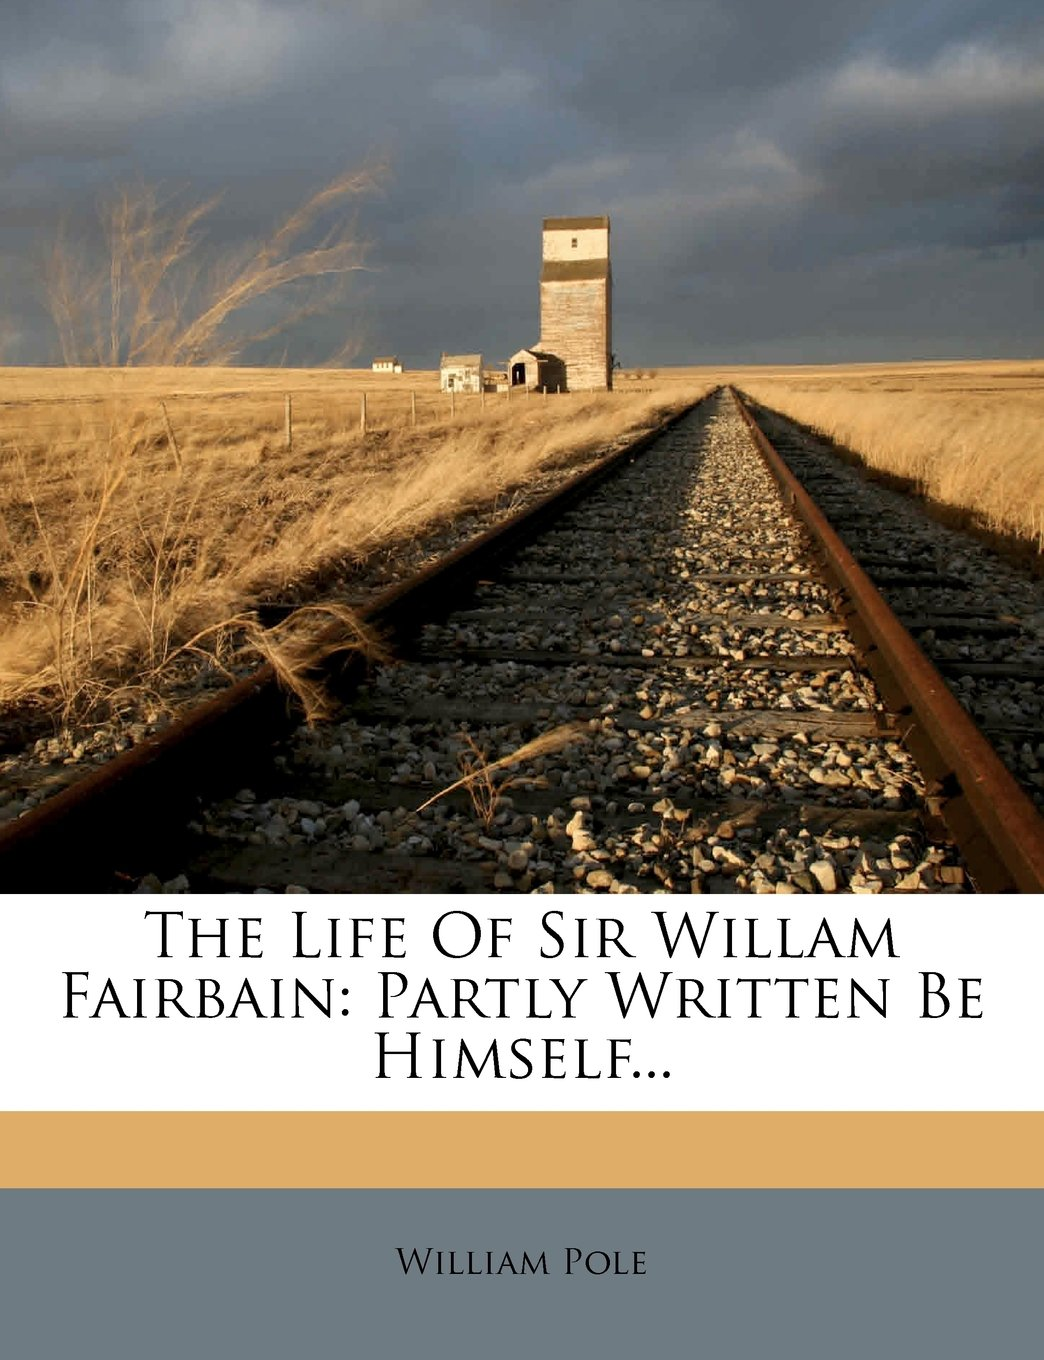 The Life of Sir Willam Fairbain: Partly Written Be Himself... pdf